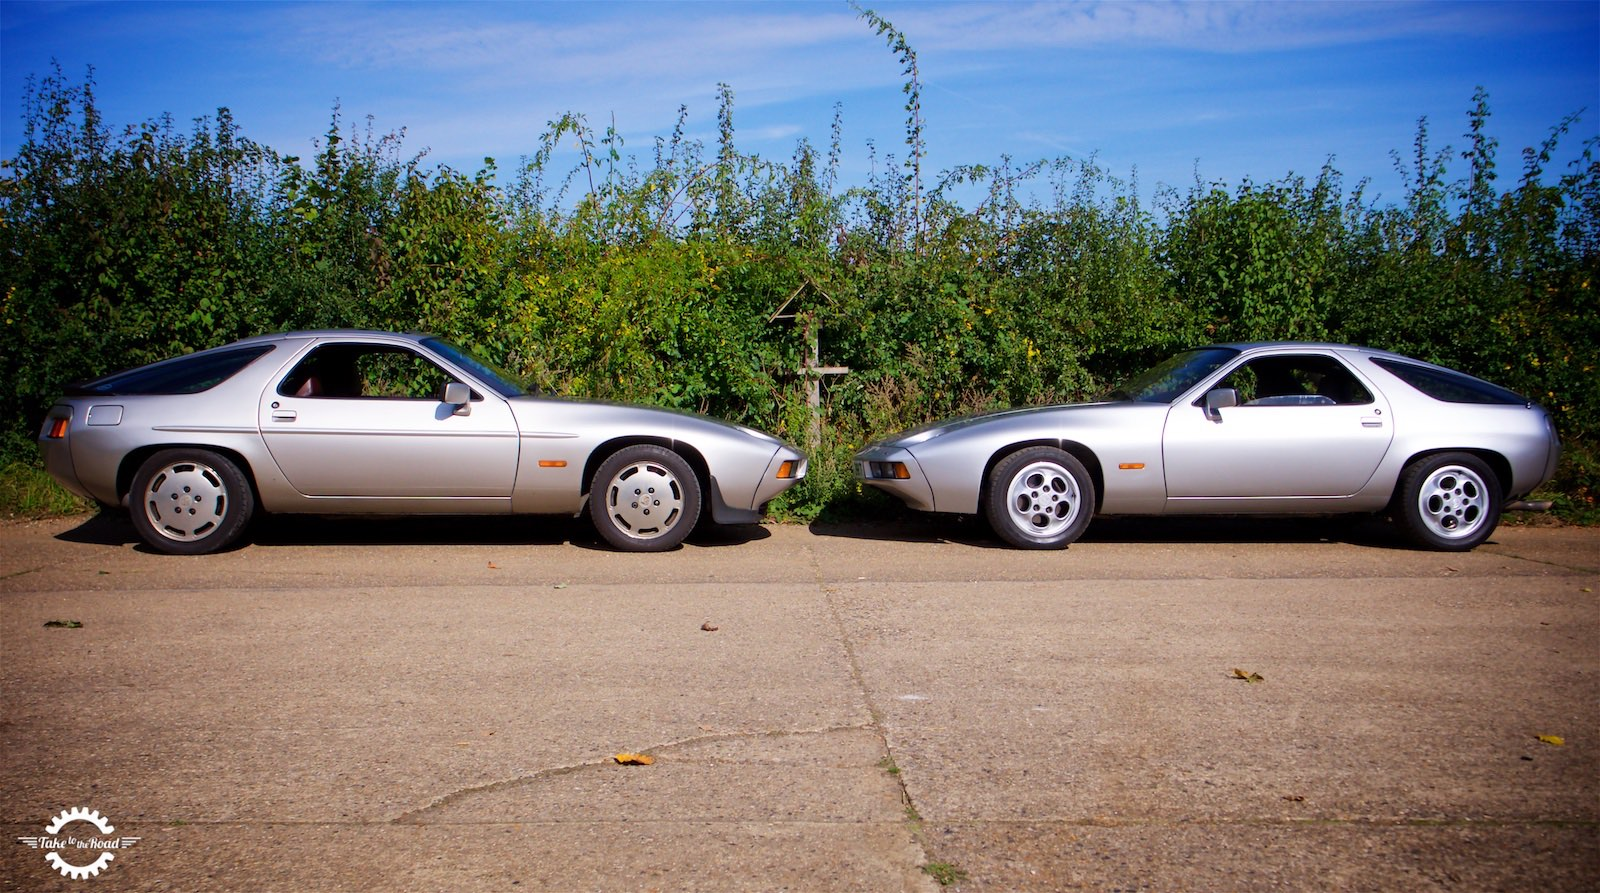 Take to the Road Feature Two Land Sharks - Porsche 928 40th Anniversary